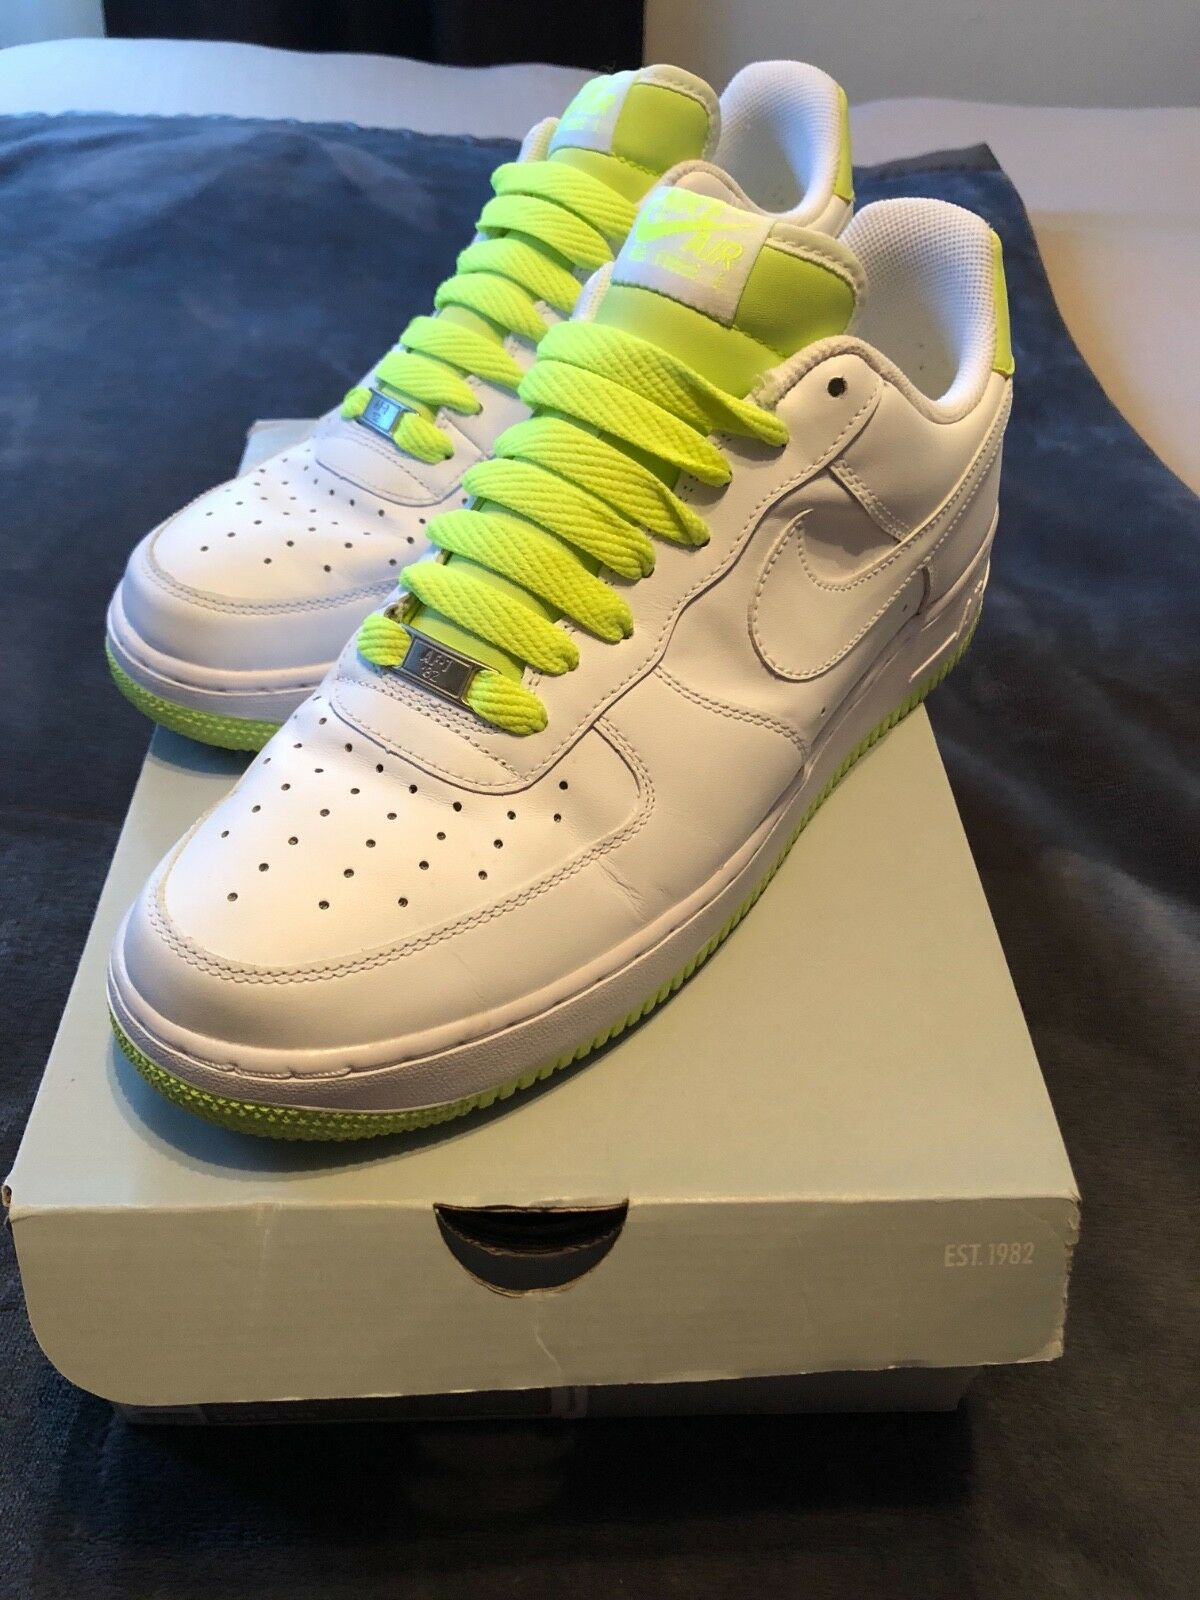 Nike air force one '07- white  volt. WORN ONCE  Original box  Make an offer